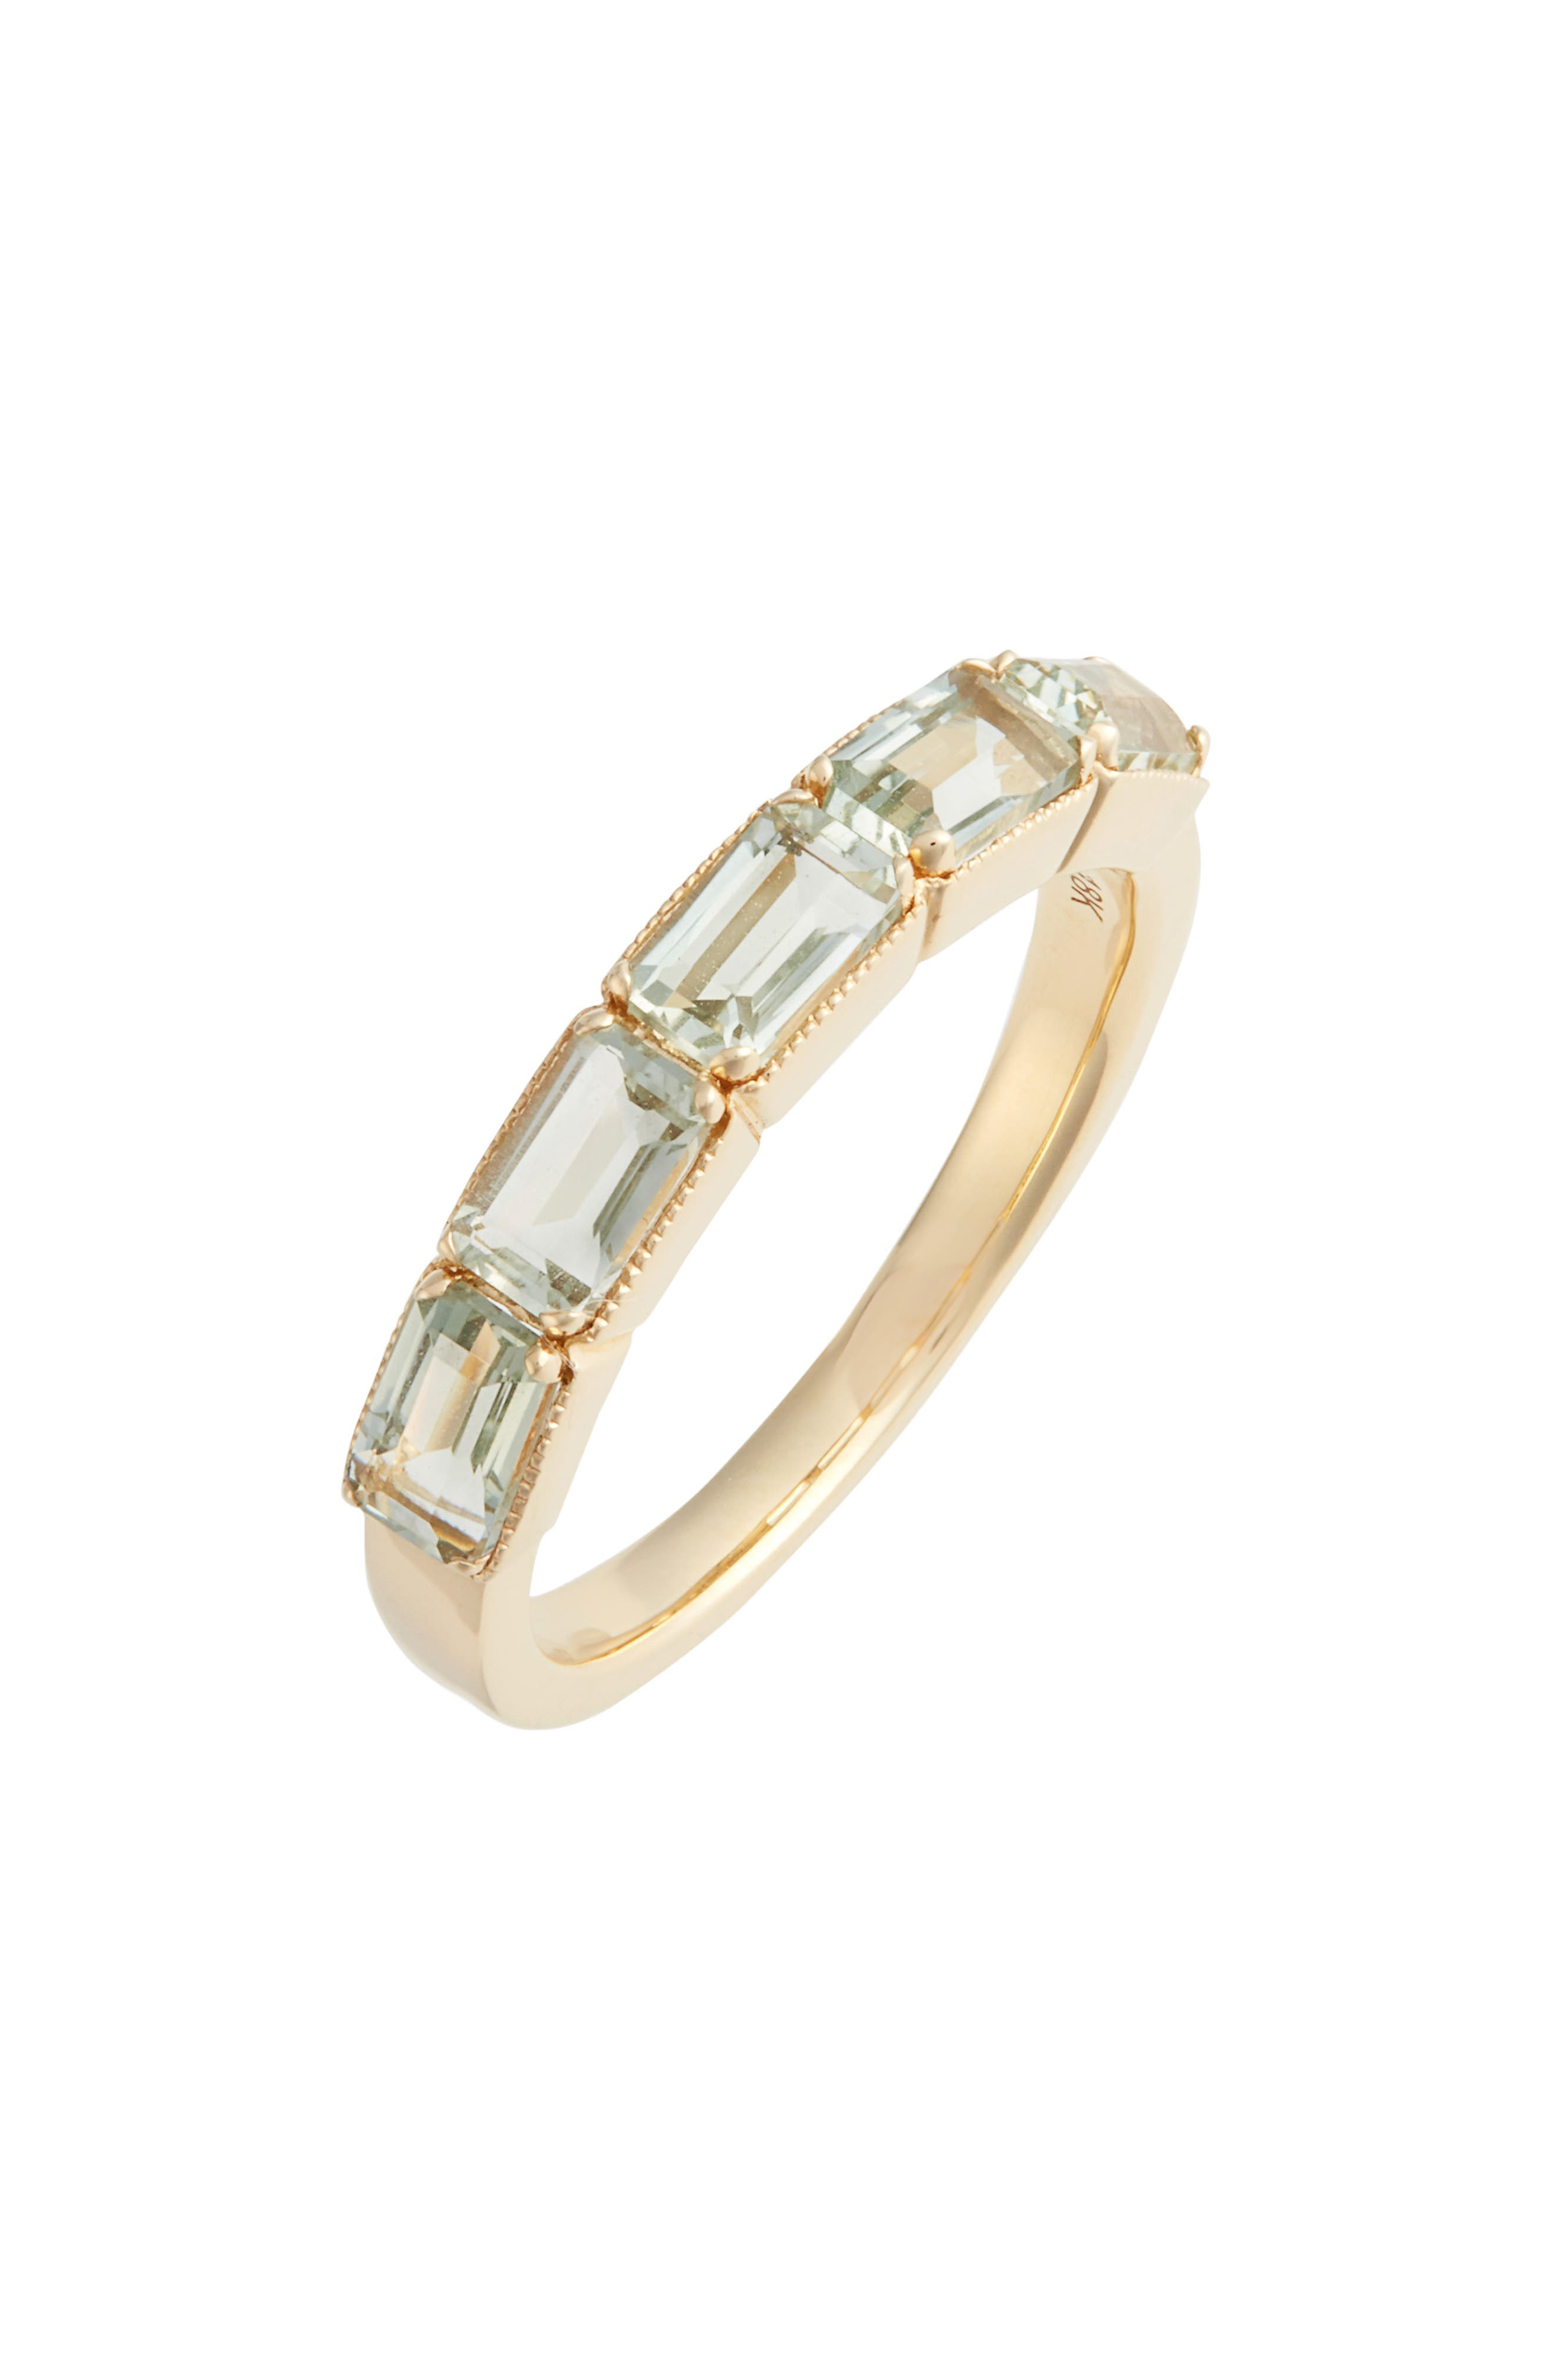 Green Amethyst Baguette Stack Ring,                         Main,                         color, YELLOW GOLD/ GREEN AMETHYST